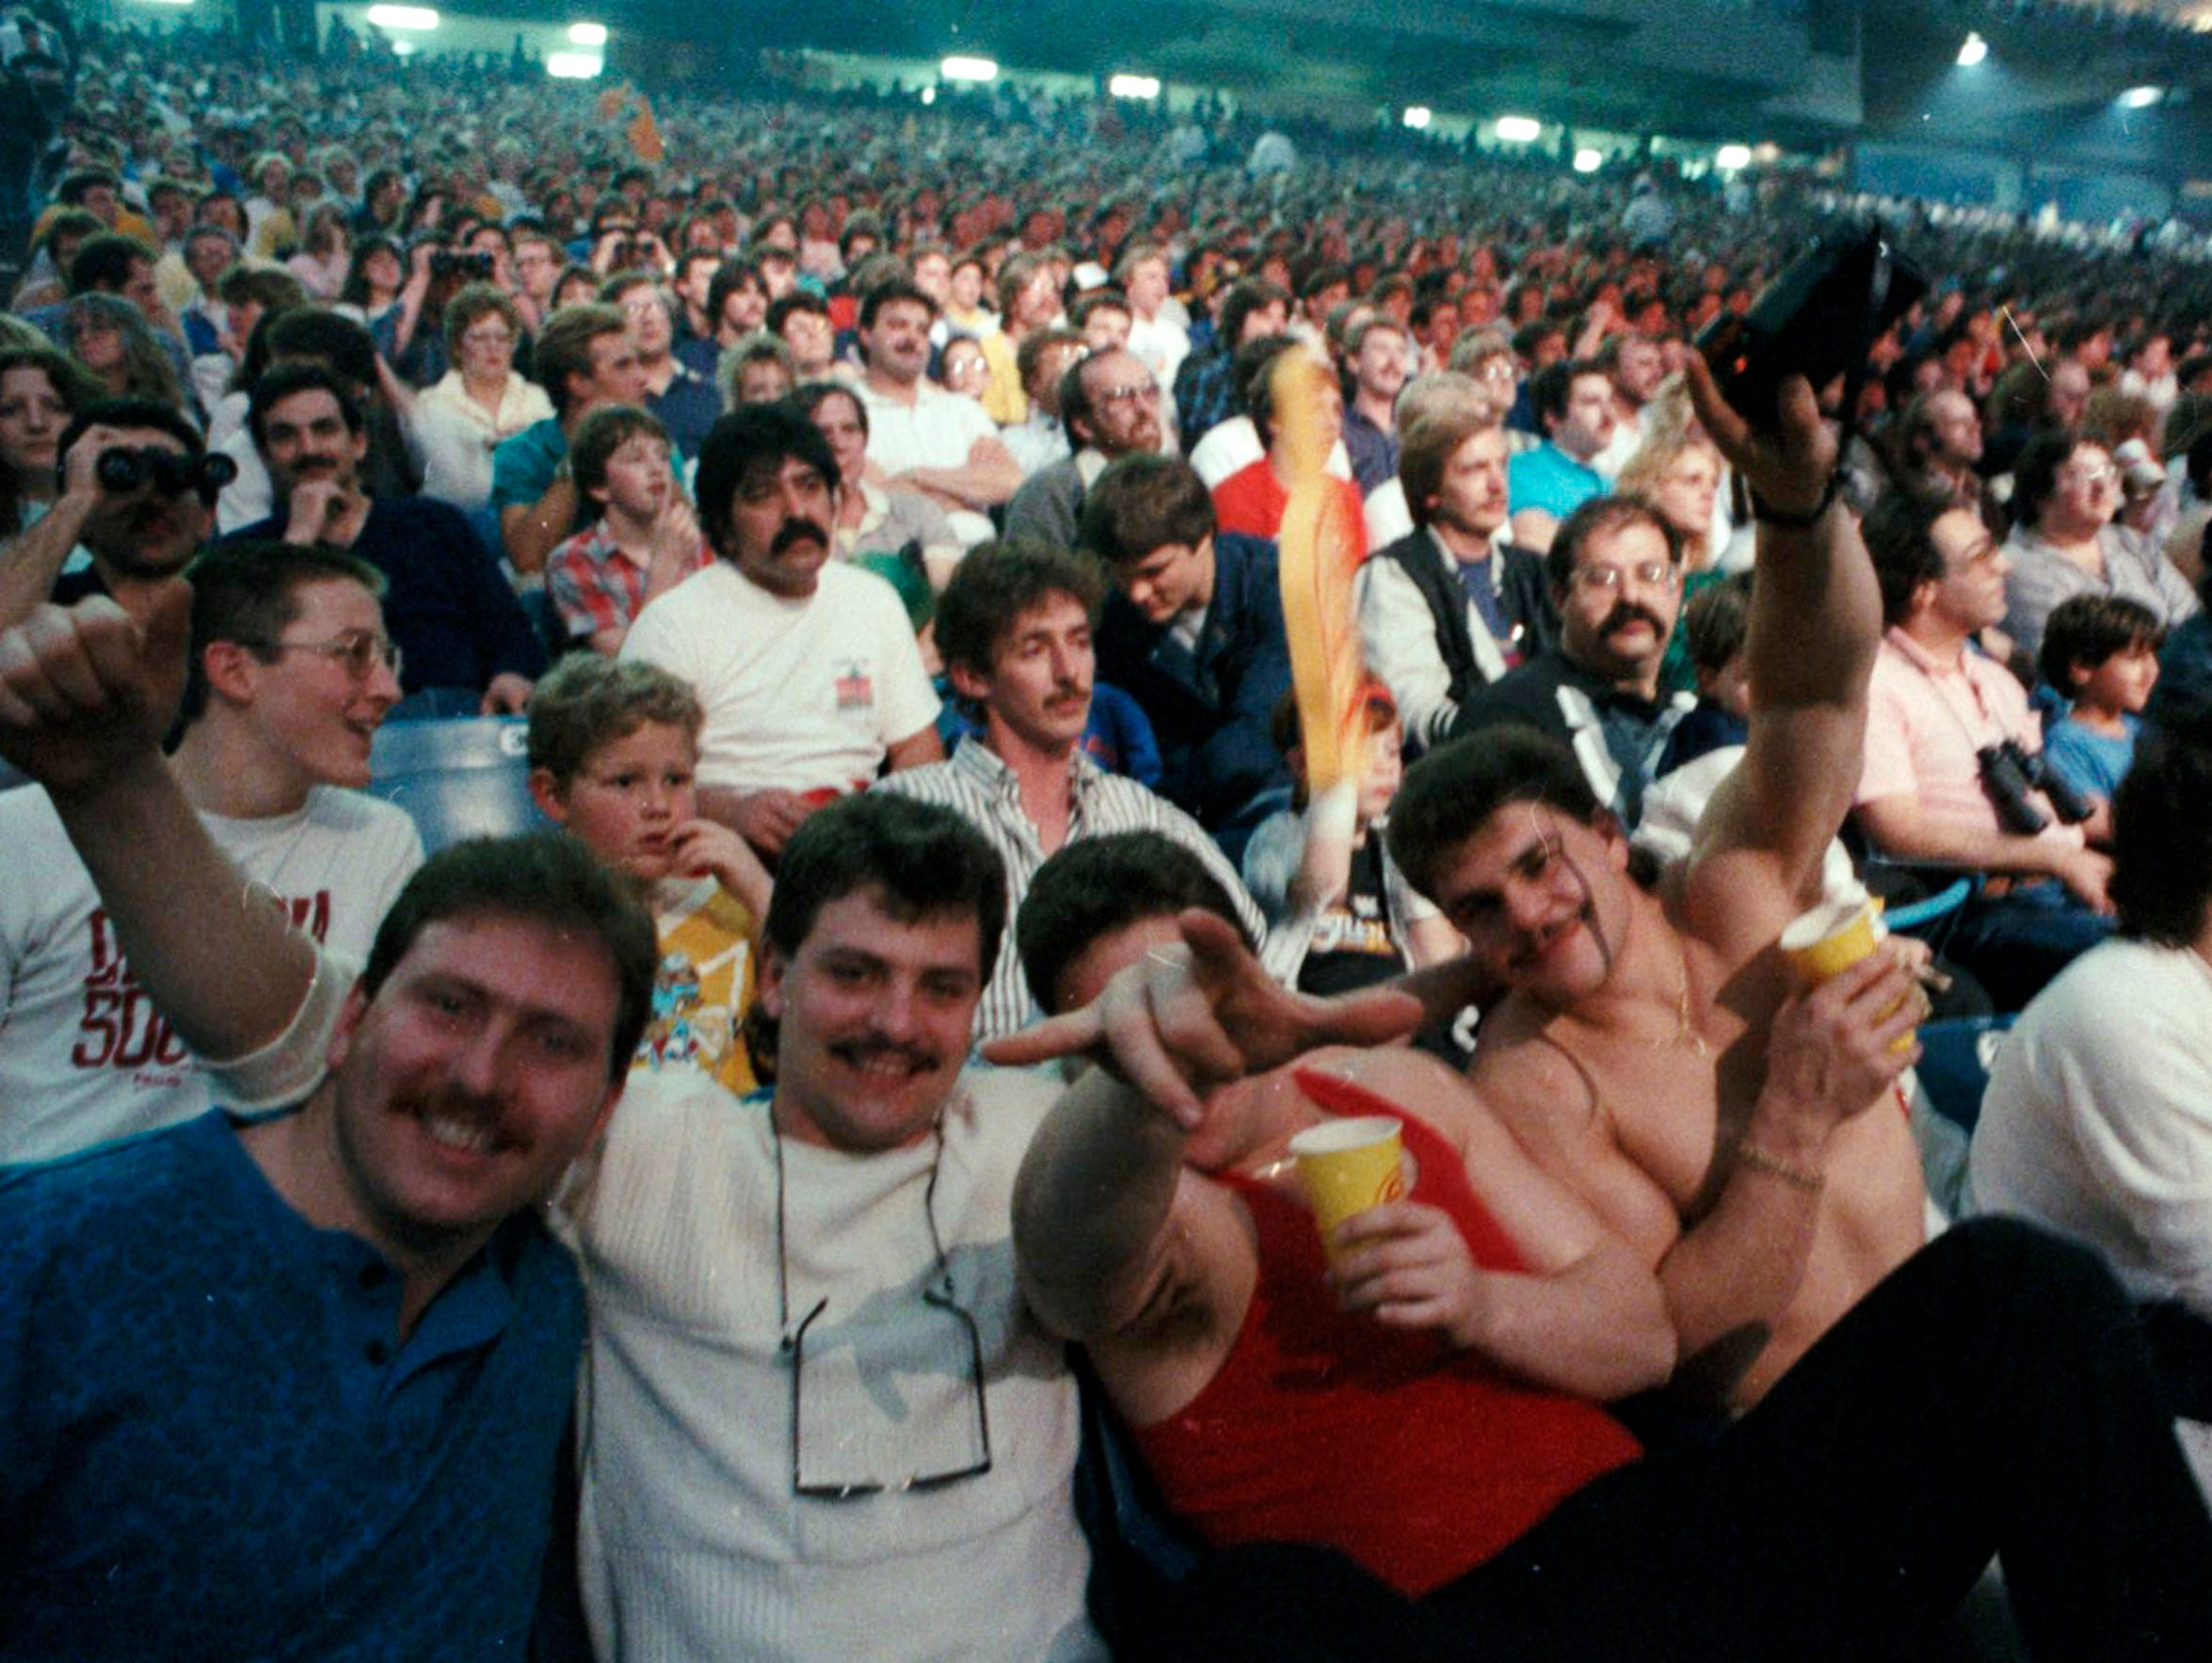 WrestleMania III is considered the day that professional